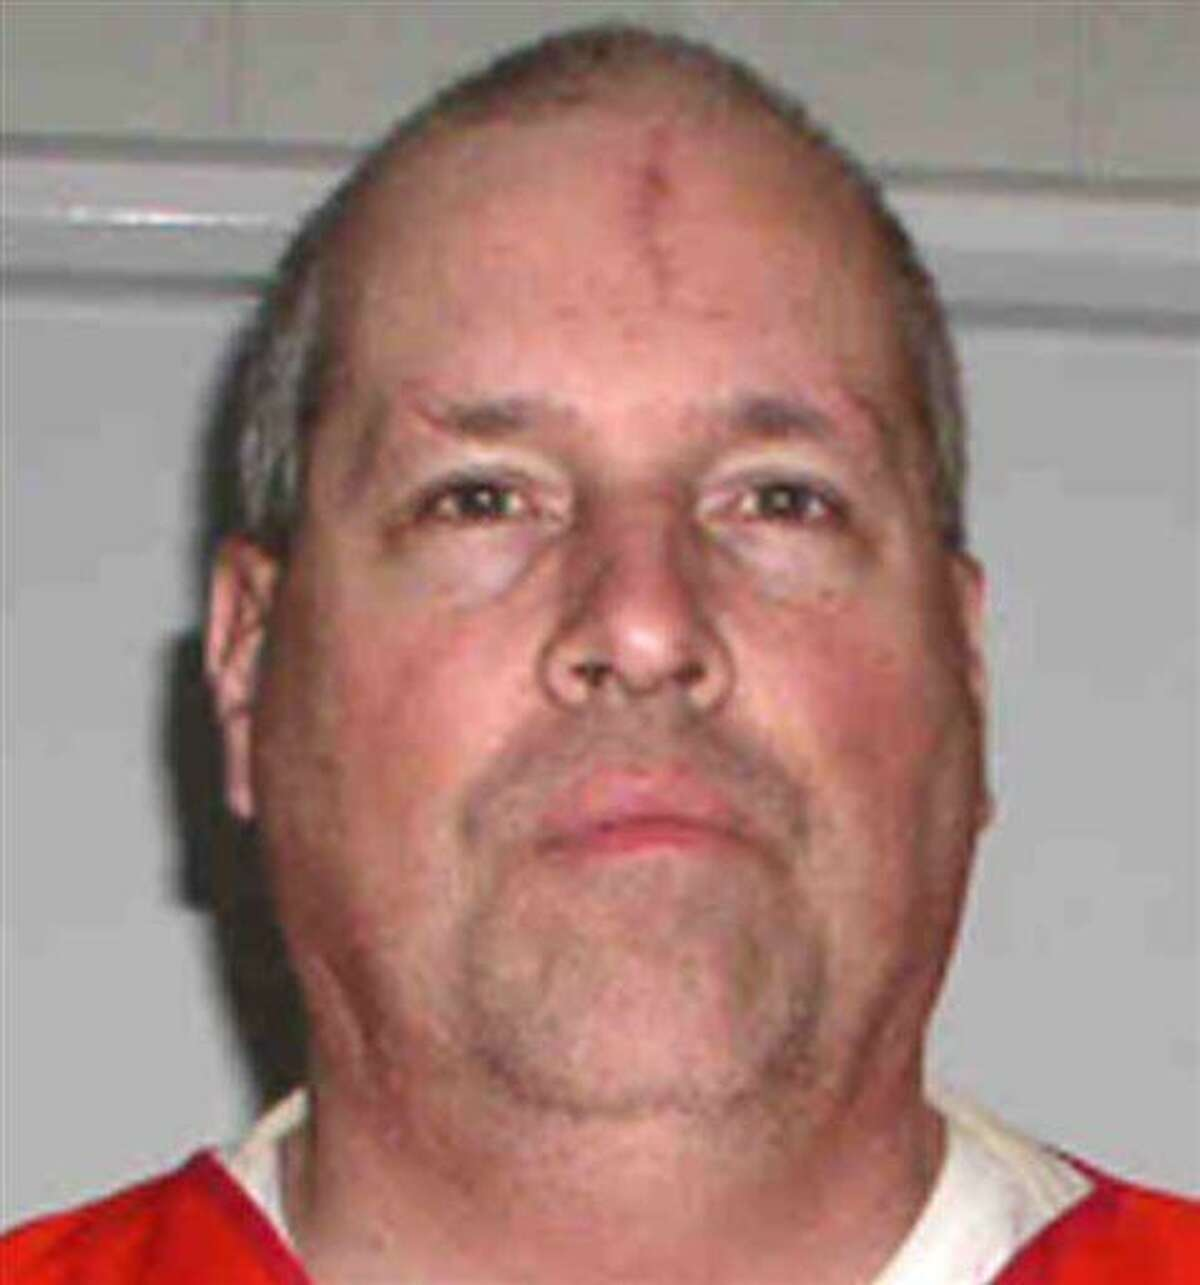 This undated file photo provided by the Vermont Department of Corrections shows Timothy J. Szad. The Vermont Department of Corrections is warning the public a high-risk sex offender is going to be released from prison soon. Szad was sentenced in 2001 on a charge of aggravated sexual assault involving a 13-year-old boy. He was sentenced to seven to 20 years in prison as part of a deal avoiding a trial at which the boy would've had to testify. He's scheduled to get out of prison in Springfield on July 26. (AP Photo/ Vermont Department of Corrections, file)